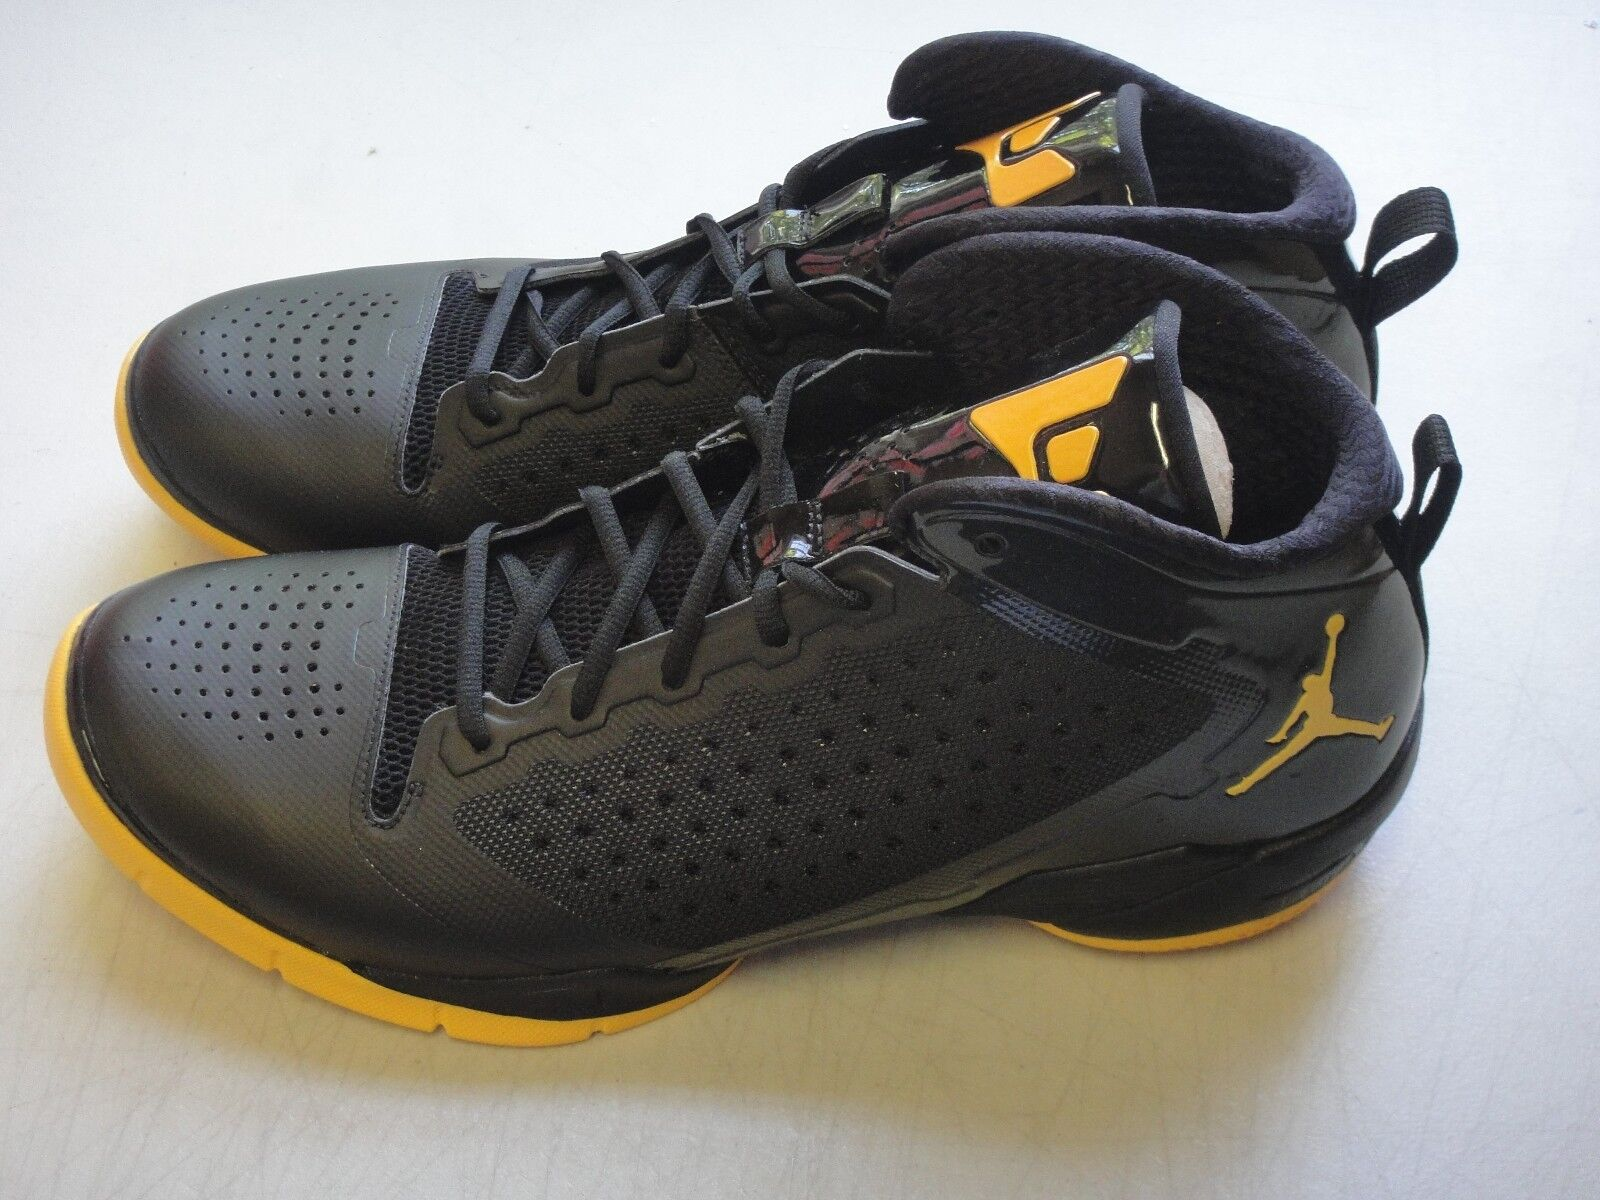 NIKE AIR JORDAN 2012 PROMO SAMPLE SHOES DWYANE WADE PE SIZE 15.5 NEW IN BOX! The most popular shoes for men and women